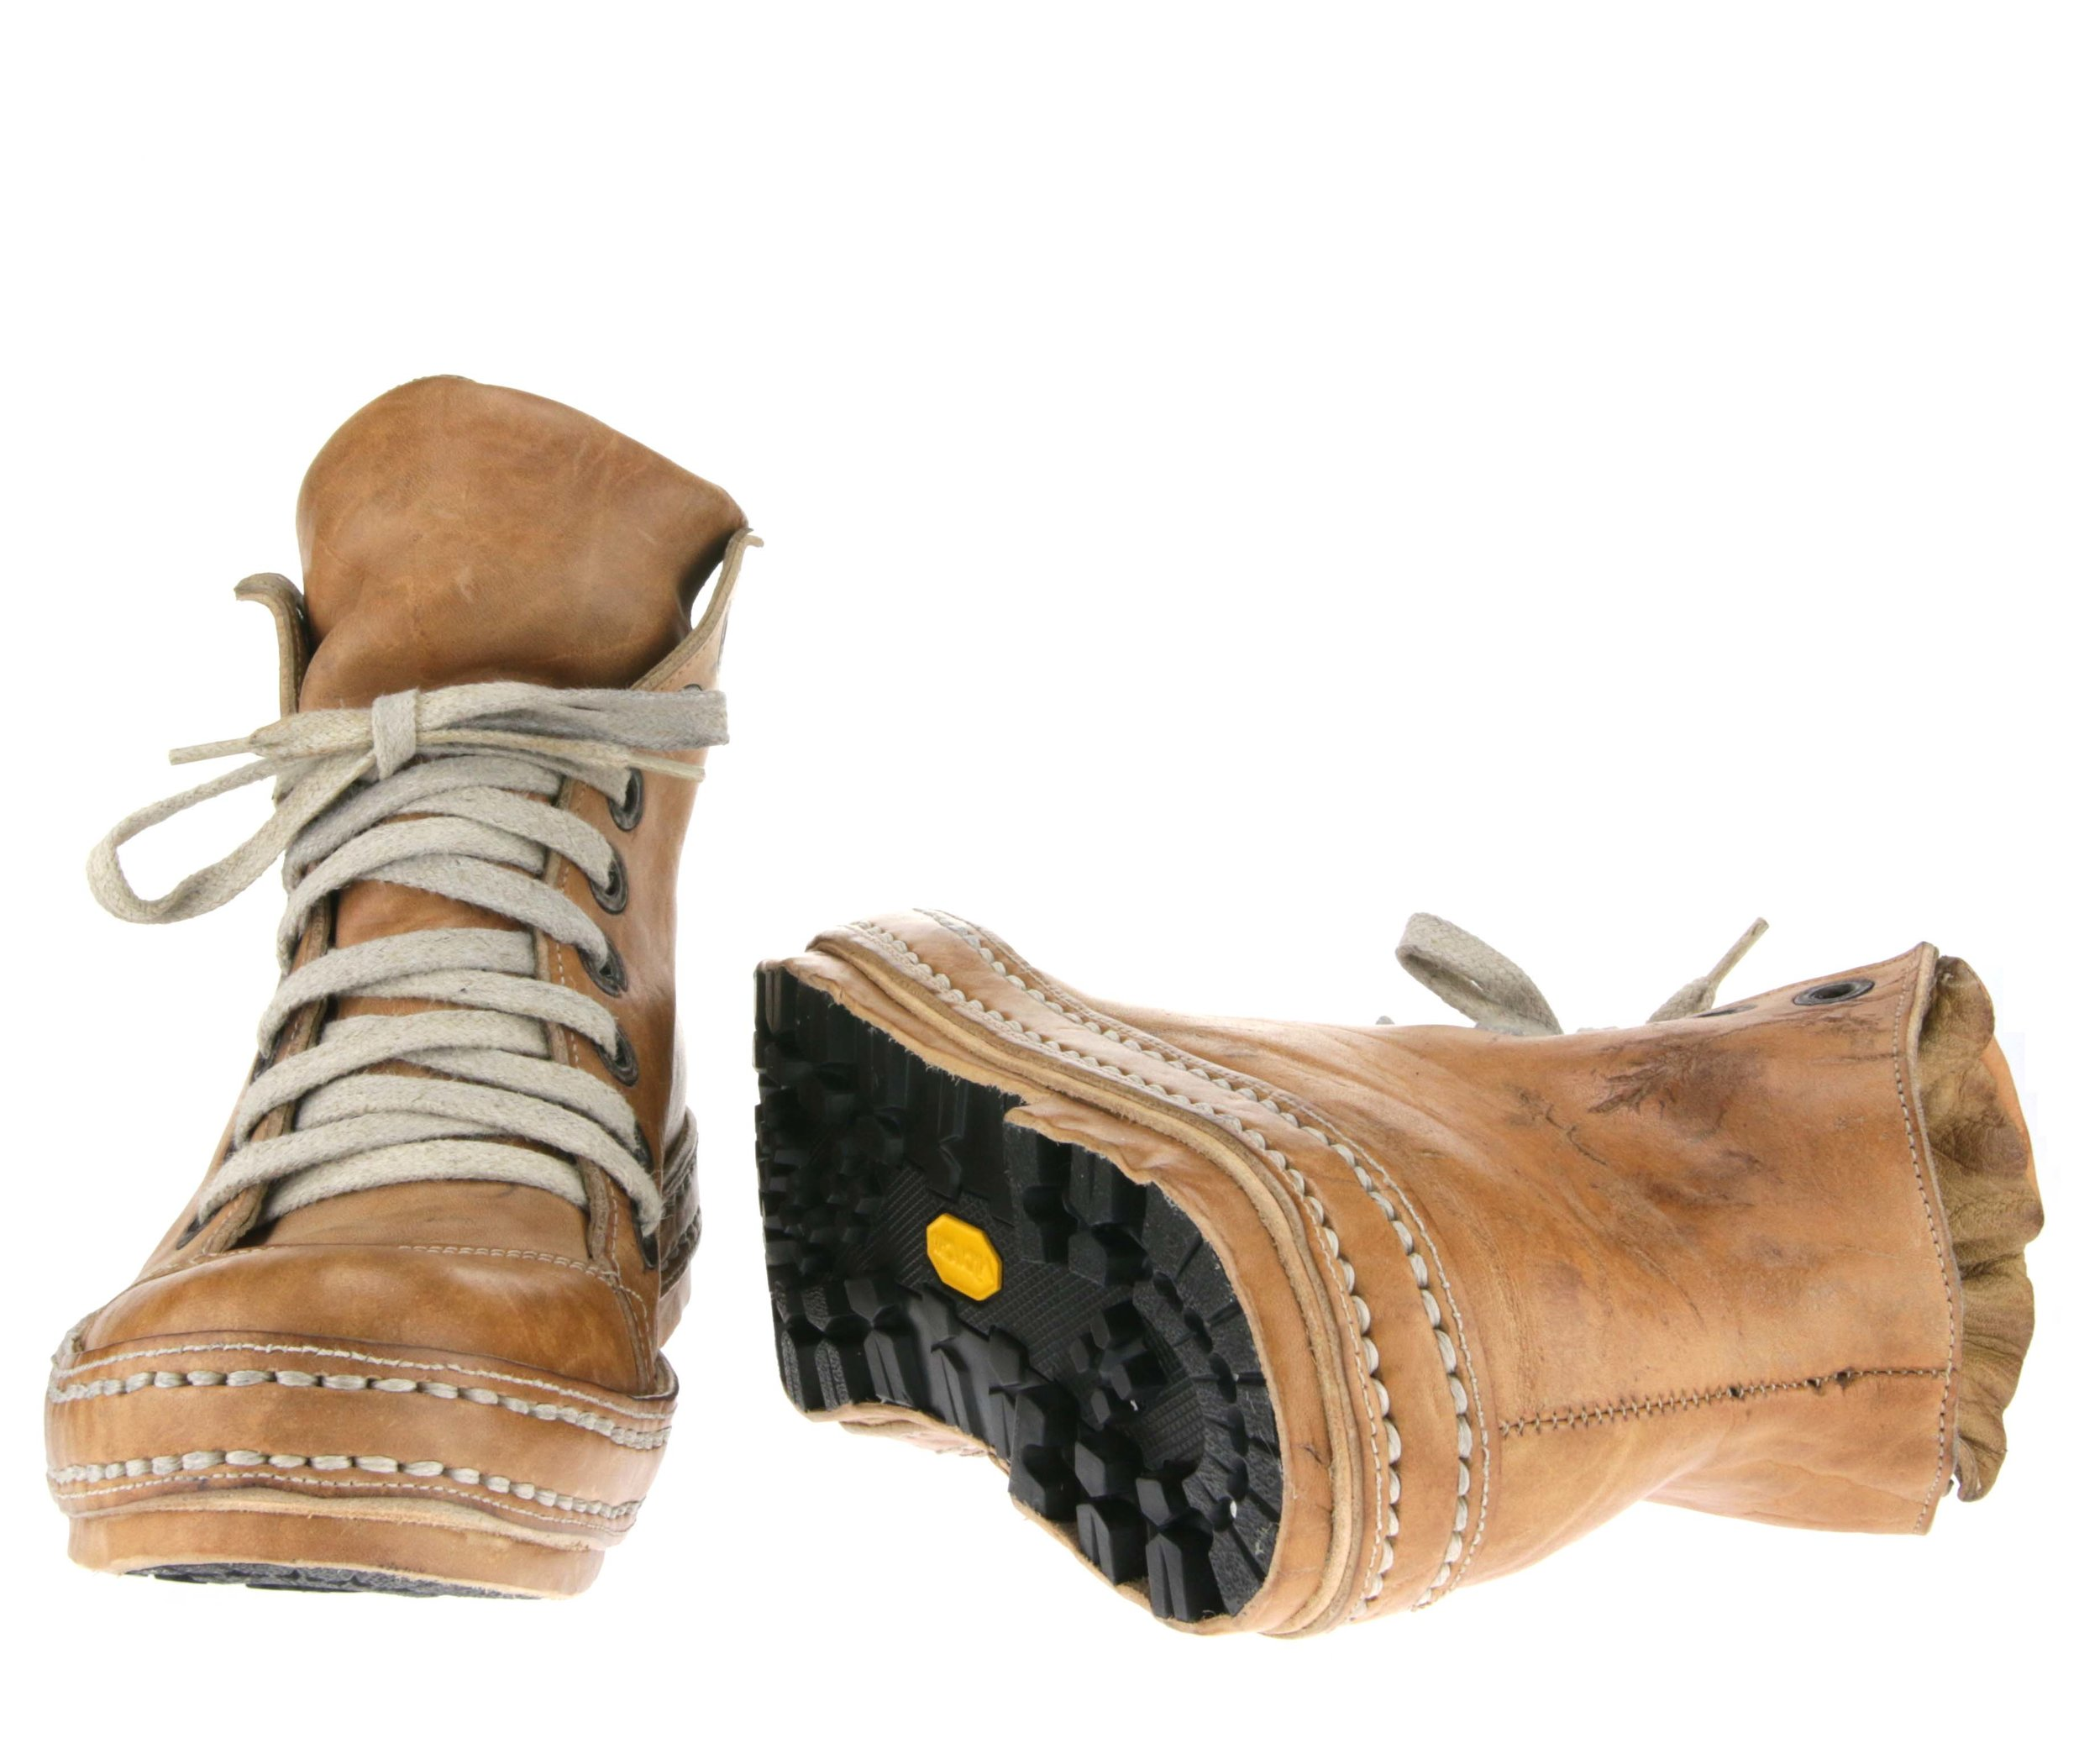 8Holes LBs Hike double front sole.JPG